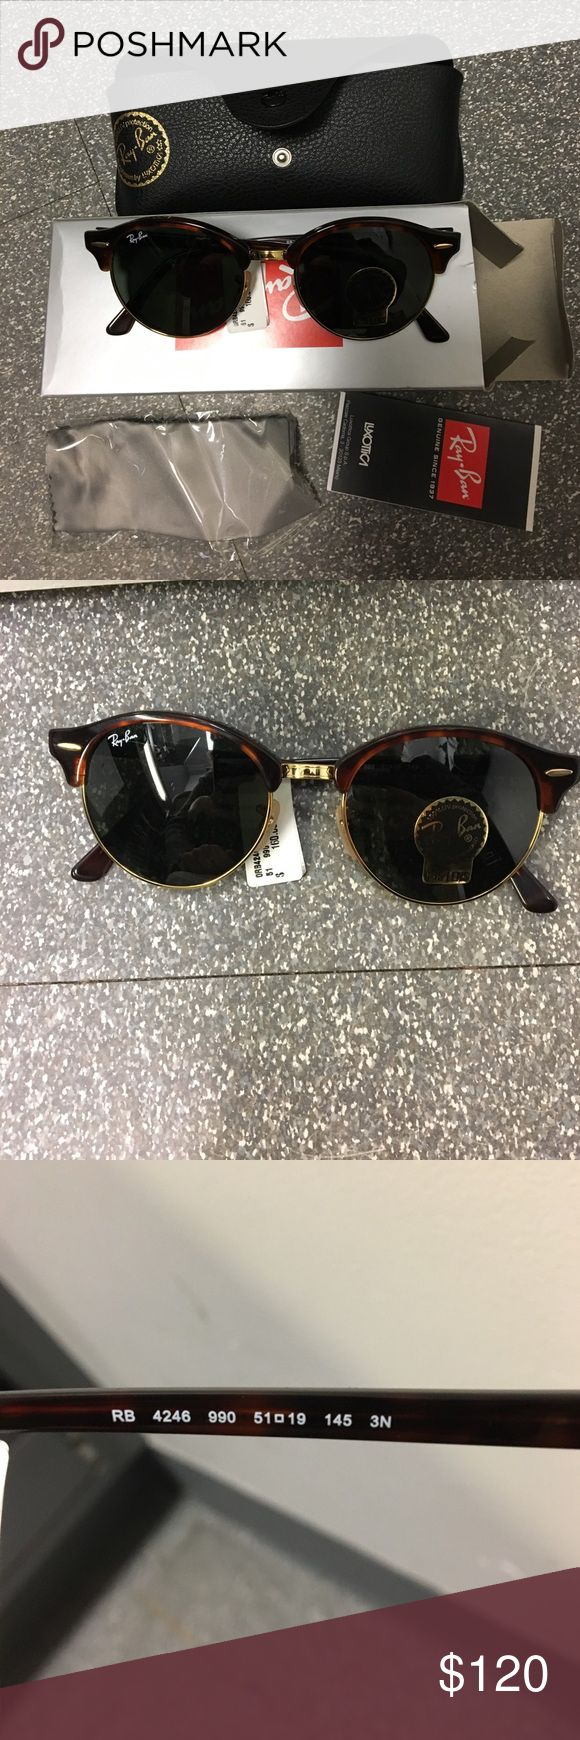 Ray Ban Round Clubround Havana Tortoise Sunglasses NWT RAY BAN ROUND TORTOISE SUNGLASSES. Never worn. I got these for my birthday and love them but already have a similar pair from illesteva. Never worn and comes with everything you see pictured. Make me an offer! Ray-Ban Accessories Sunglasses